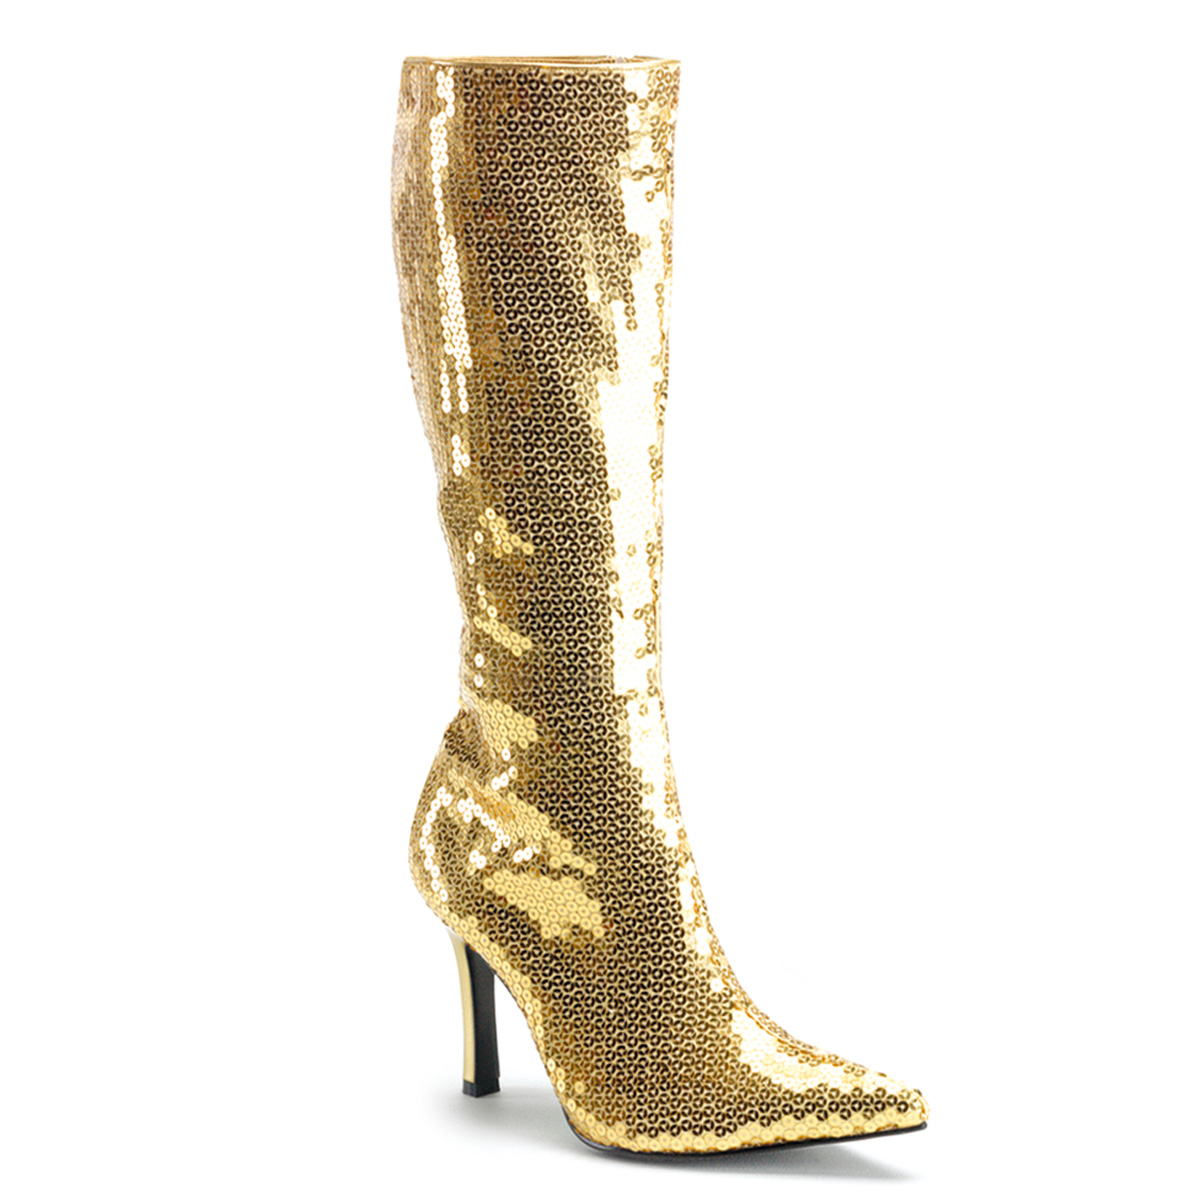 Funtasma by Pleaser Women's Lust-2001 Boot - Gold Sequins at Sears.com